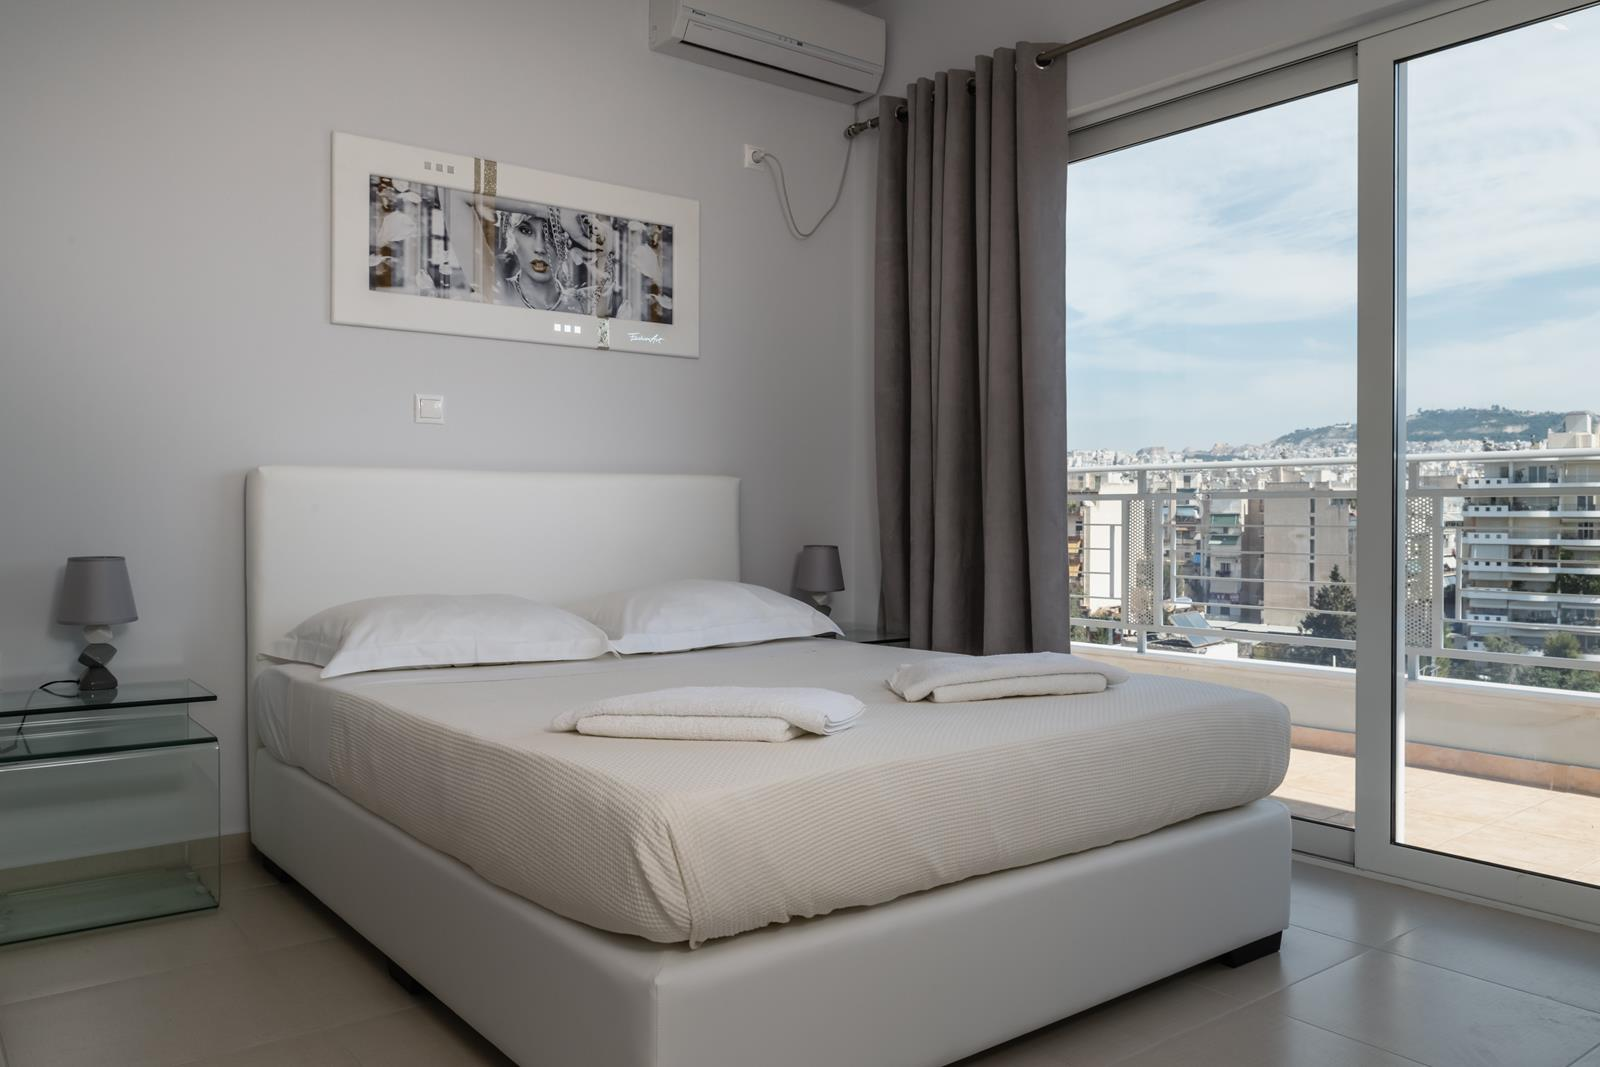 stay in athens - Alekos Apartments & Suites